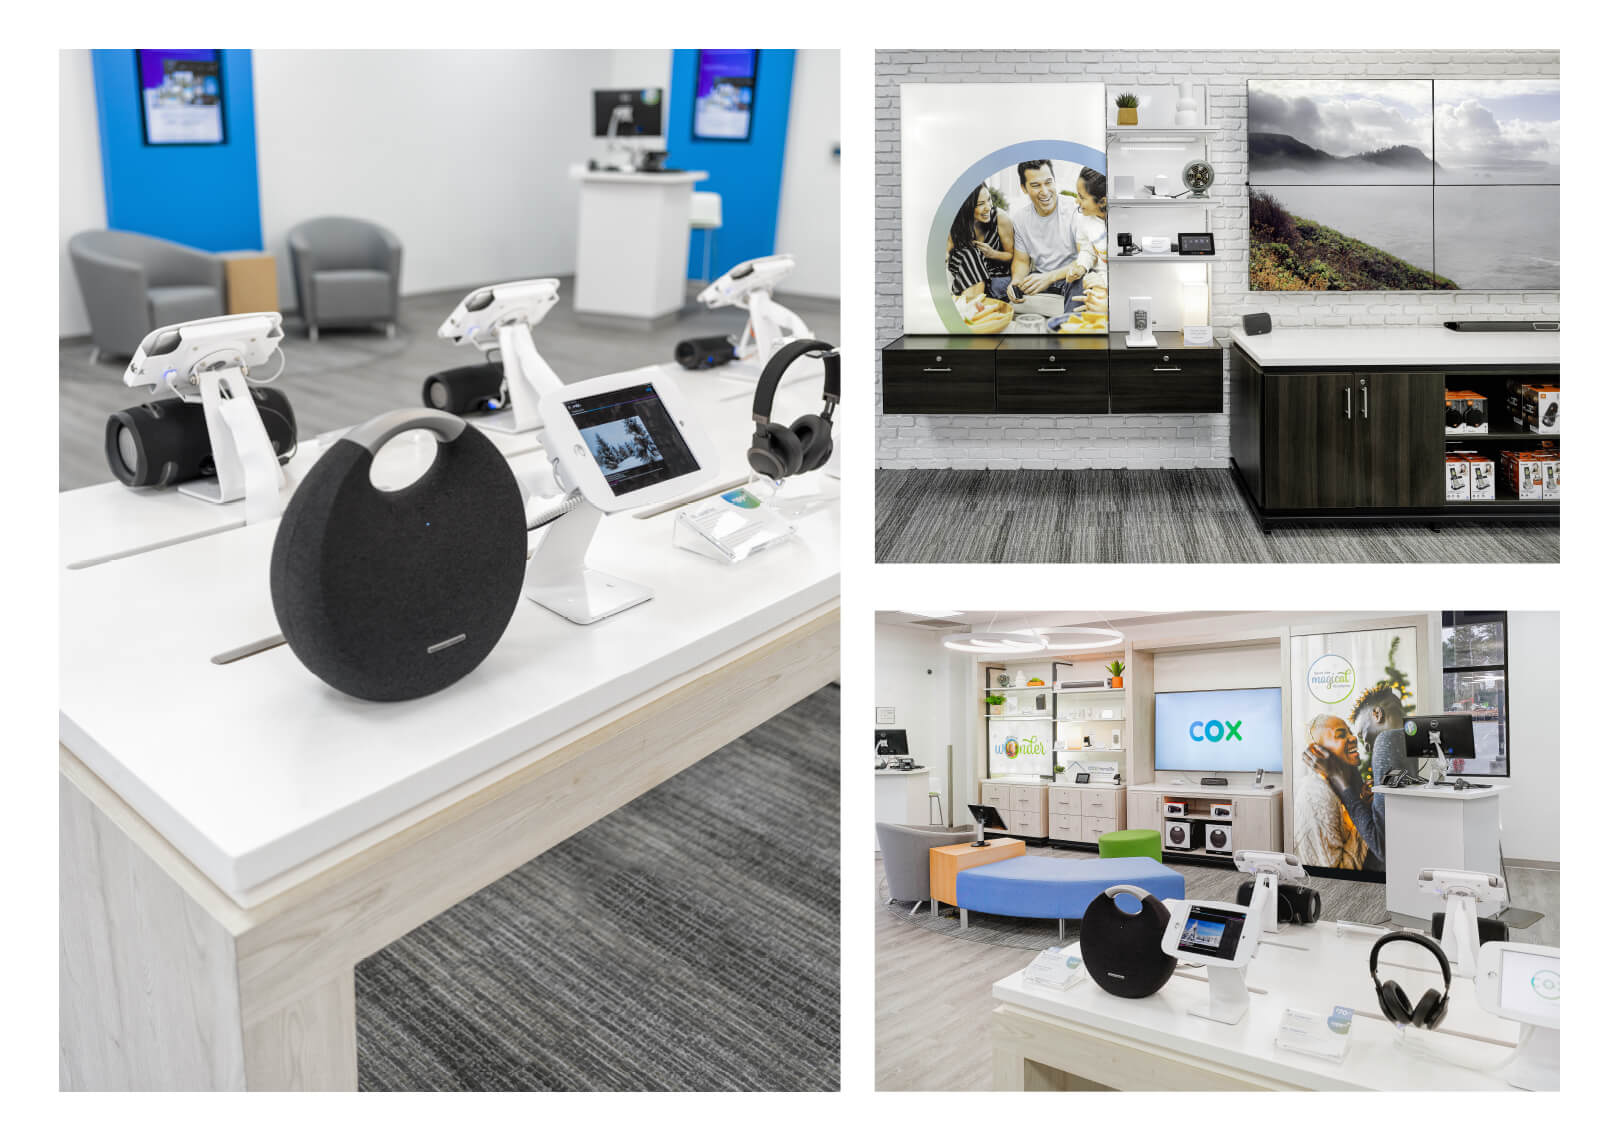 Cox Communication retail spaces images